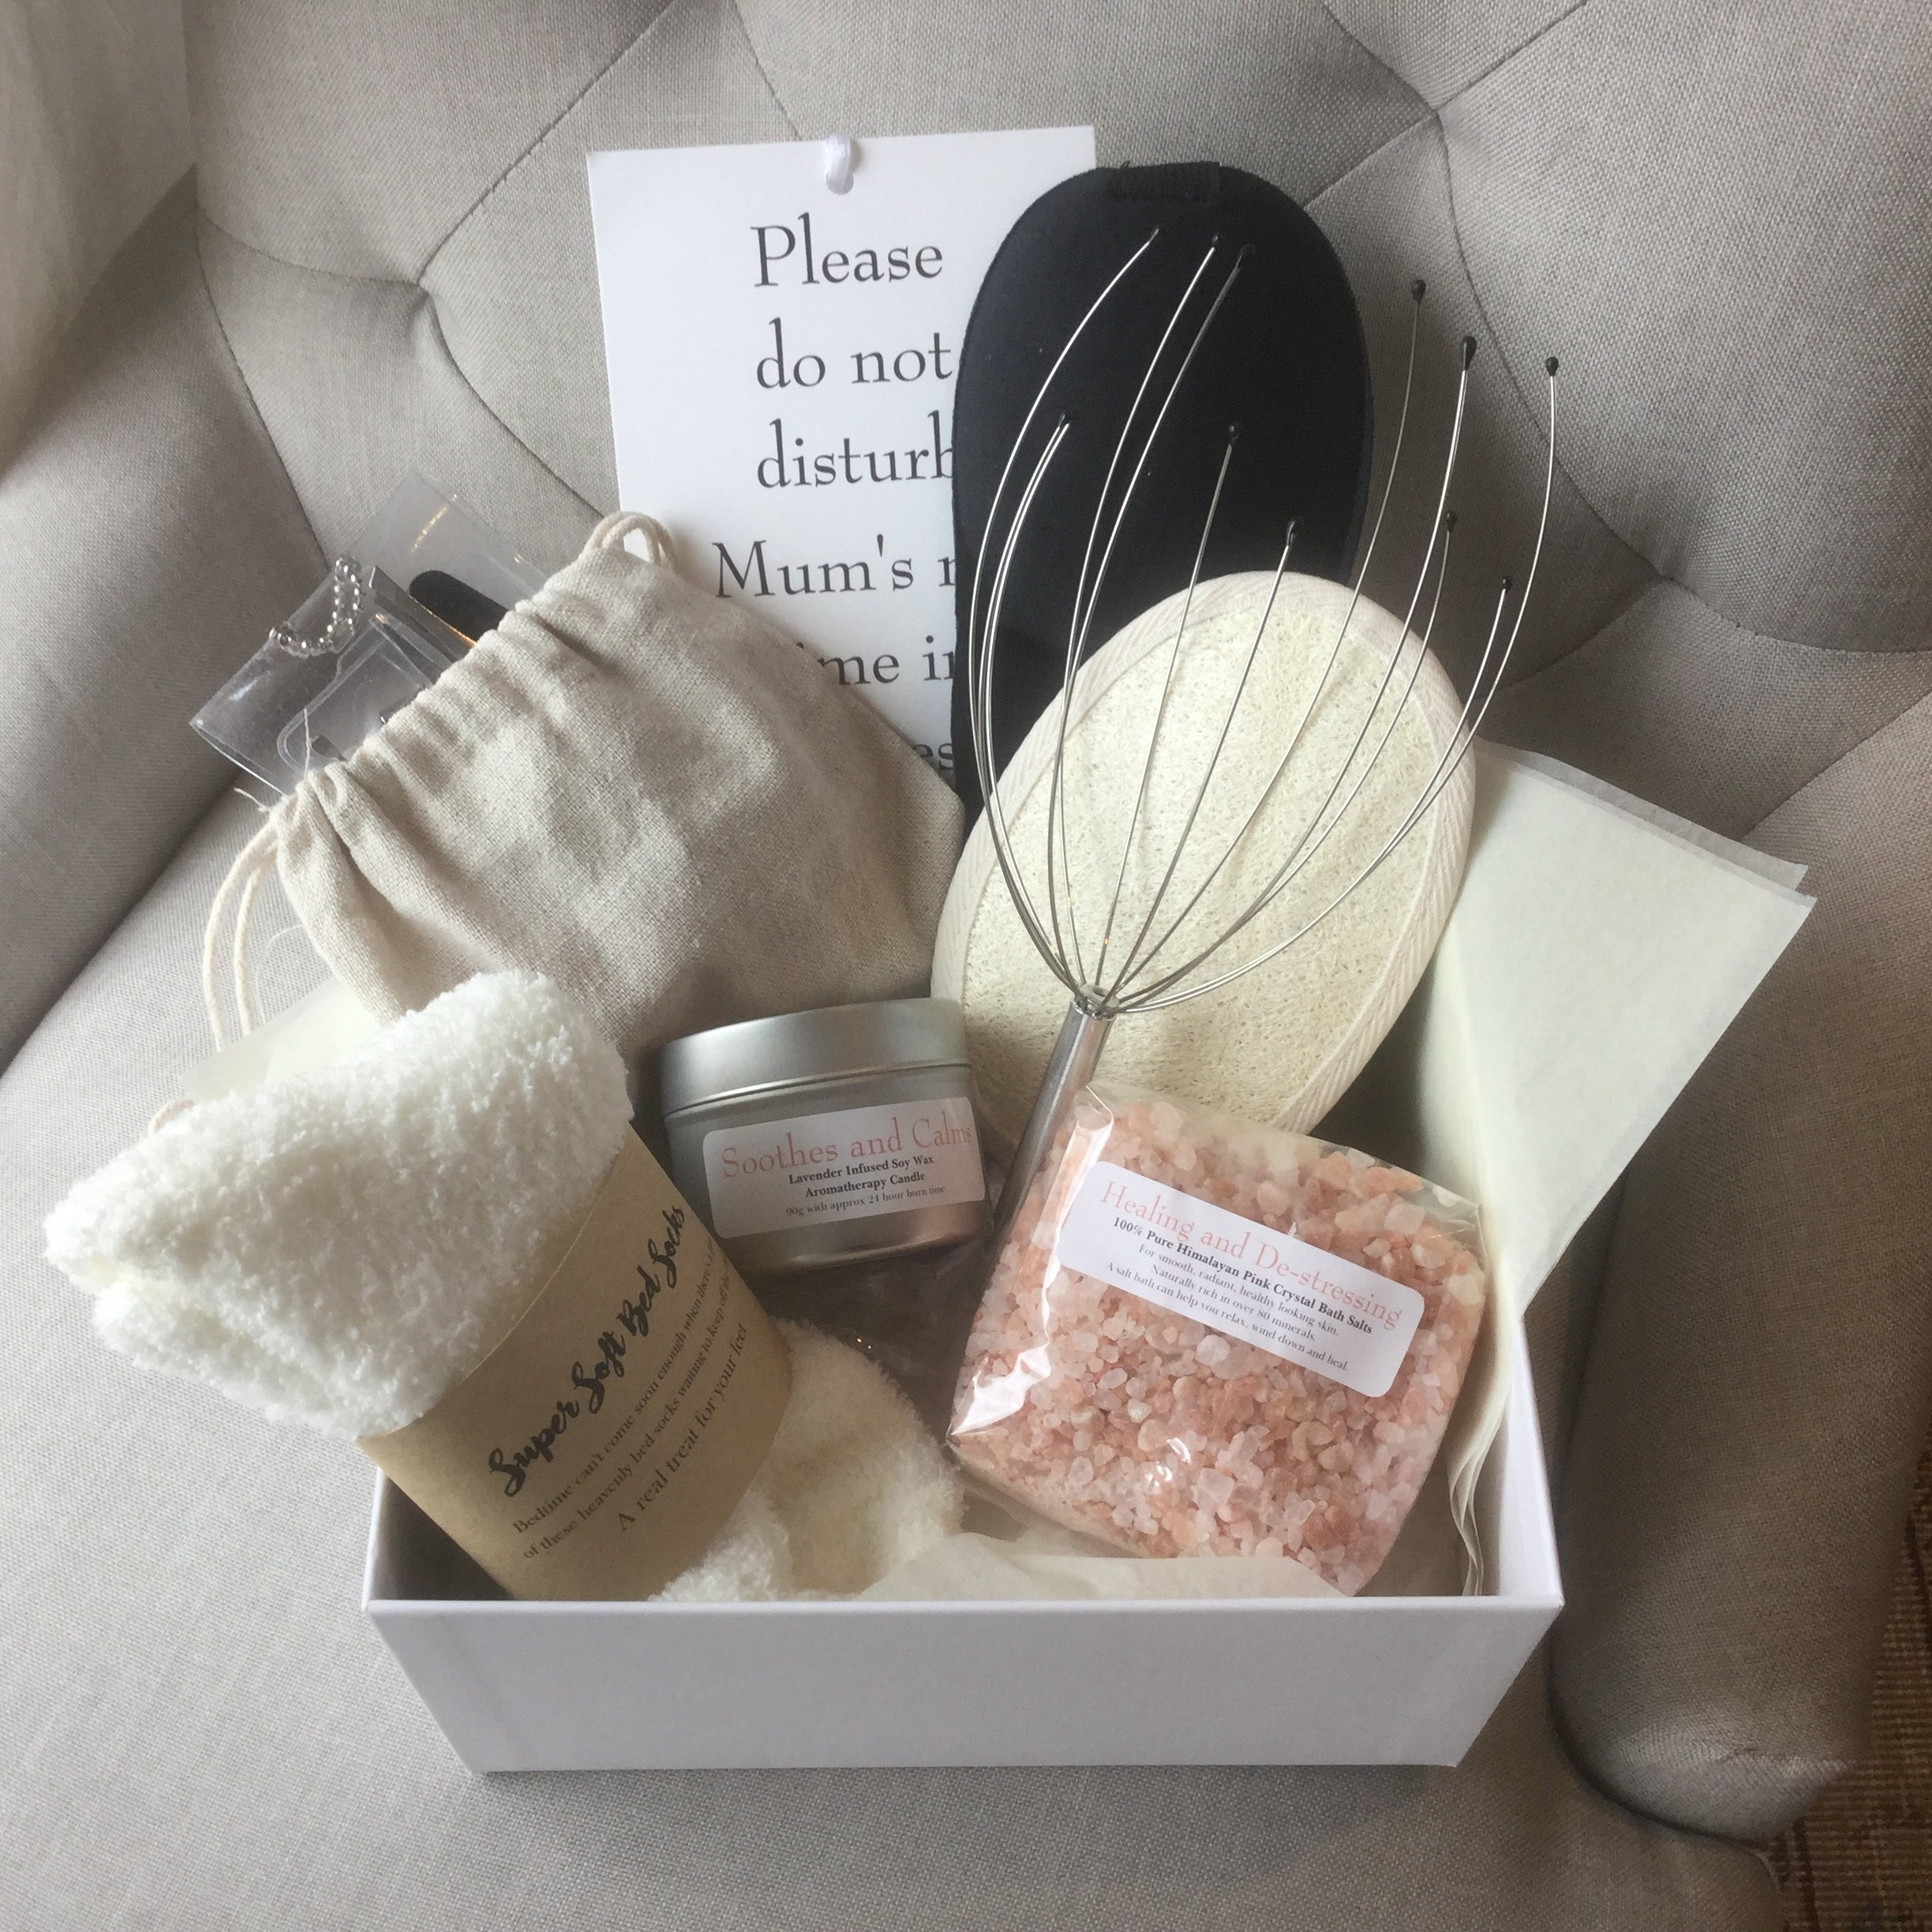 Mum's 'ME TIME' Pamper Box, A Beautiful Silver Embossed Box containing a 9 Piece Luxury Pampering Set- a Wonderfully Thoughtful Gift for Mum or Mum-to-be.